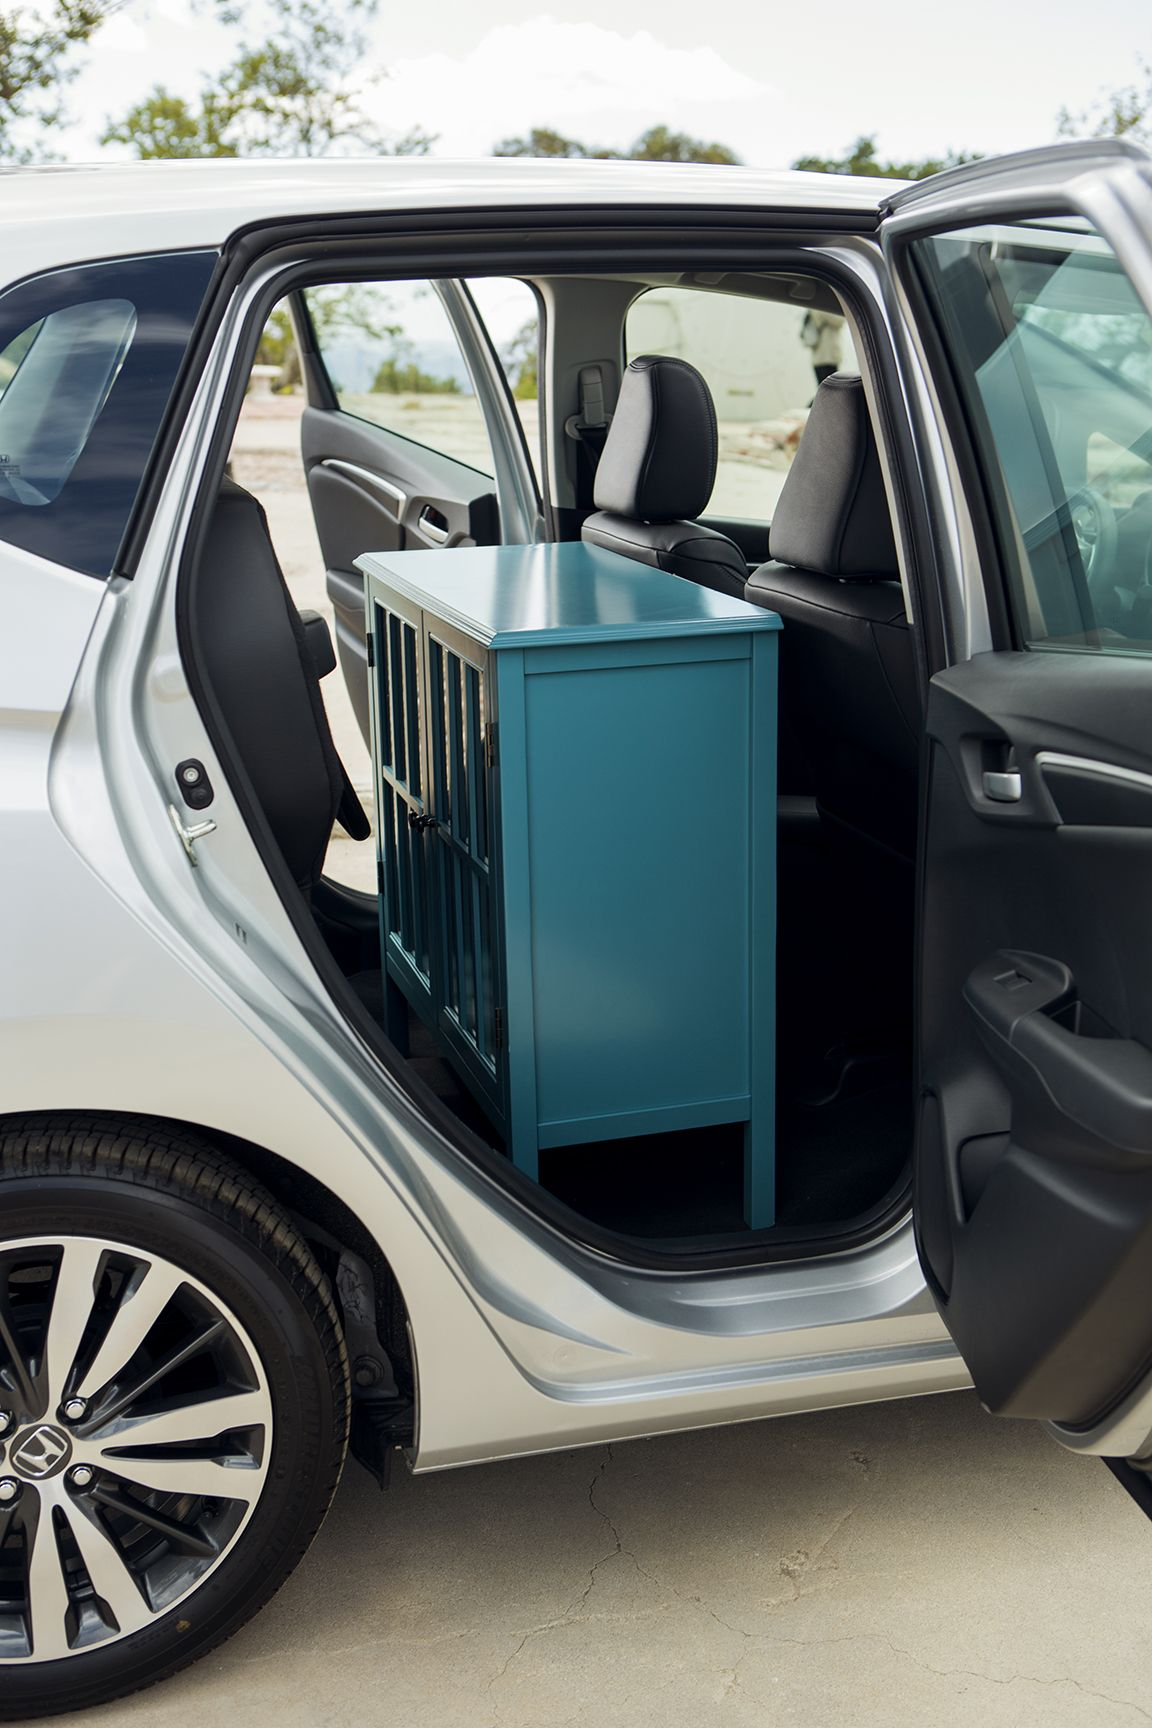 After you're done with your DIY painting project, load it into your Fit and take it home.   Honda reminds you to properly secure items in the cargo area.